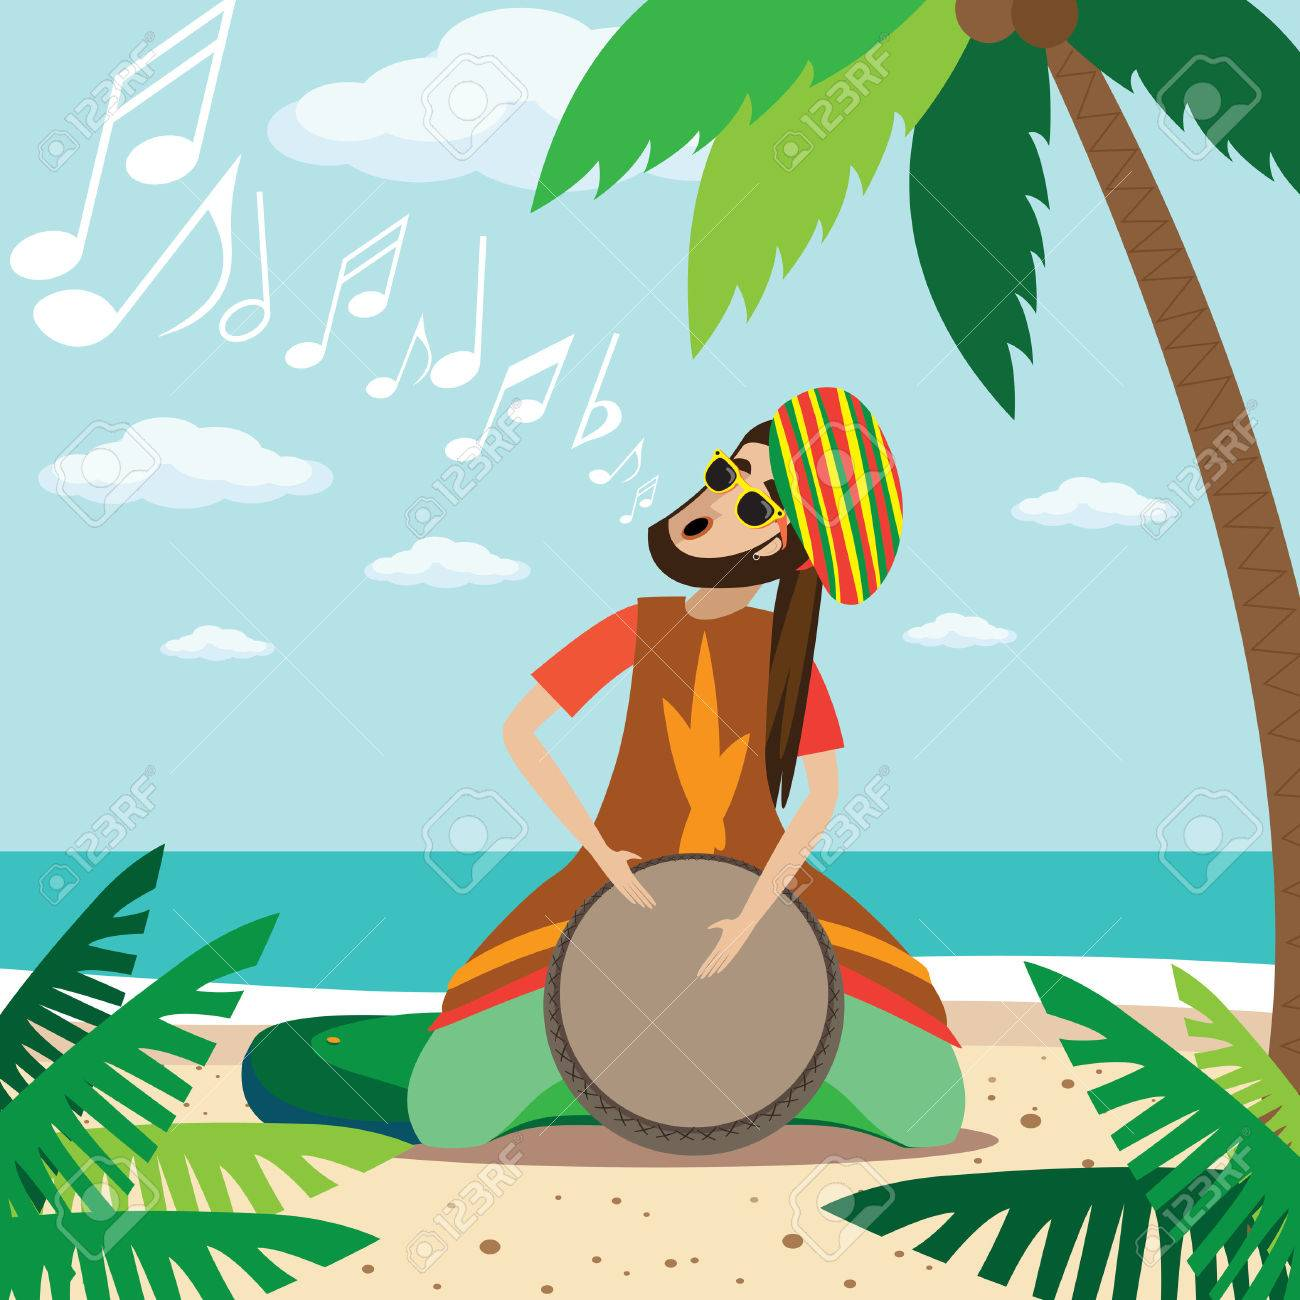 Rasta stock photos royalty free business images vector illustration on color background featuring rasta man sitting on the beach plays on the biocorpaavc Image collections